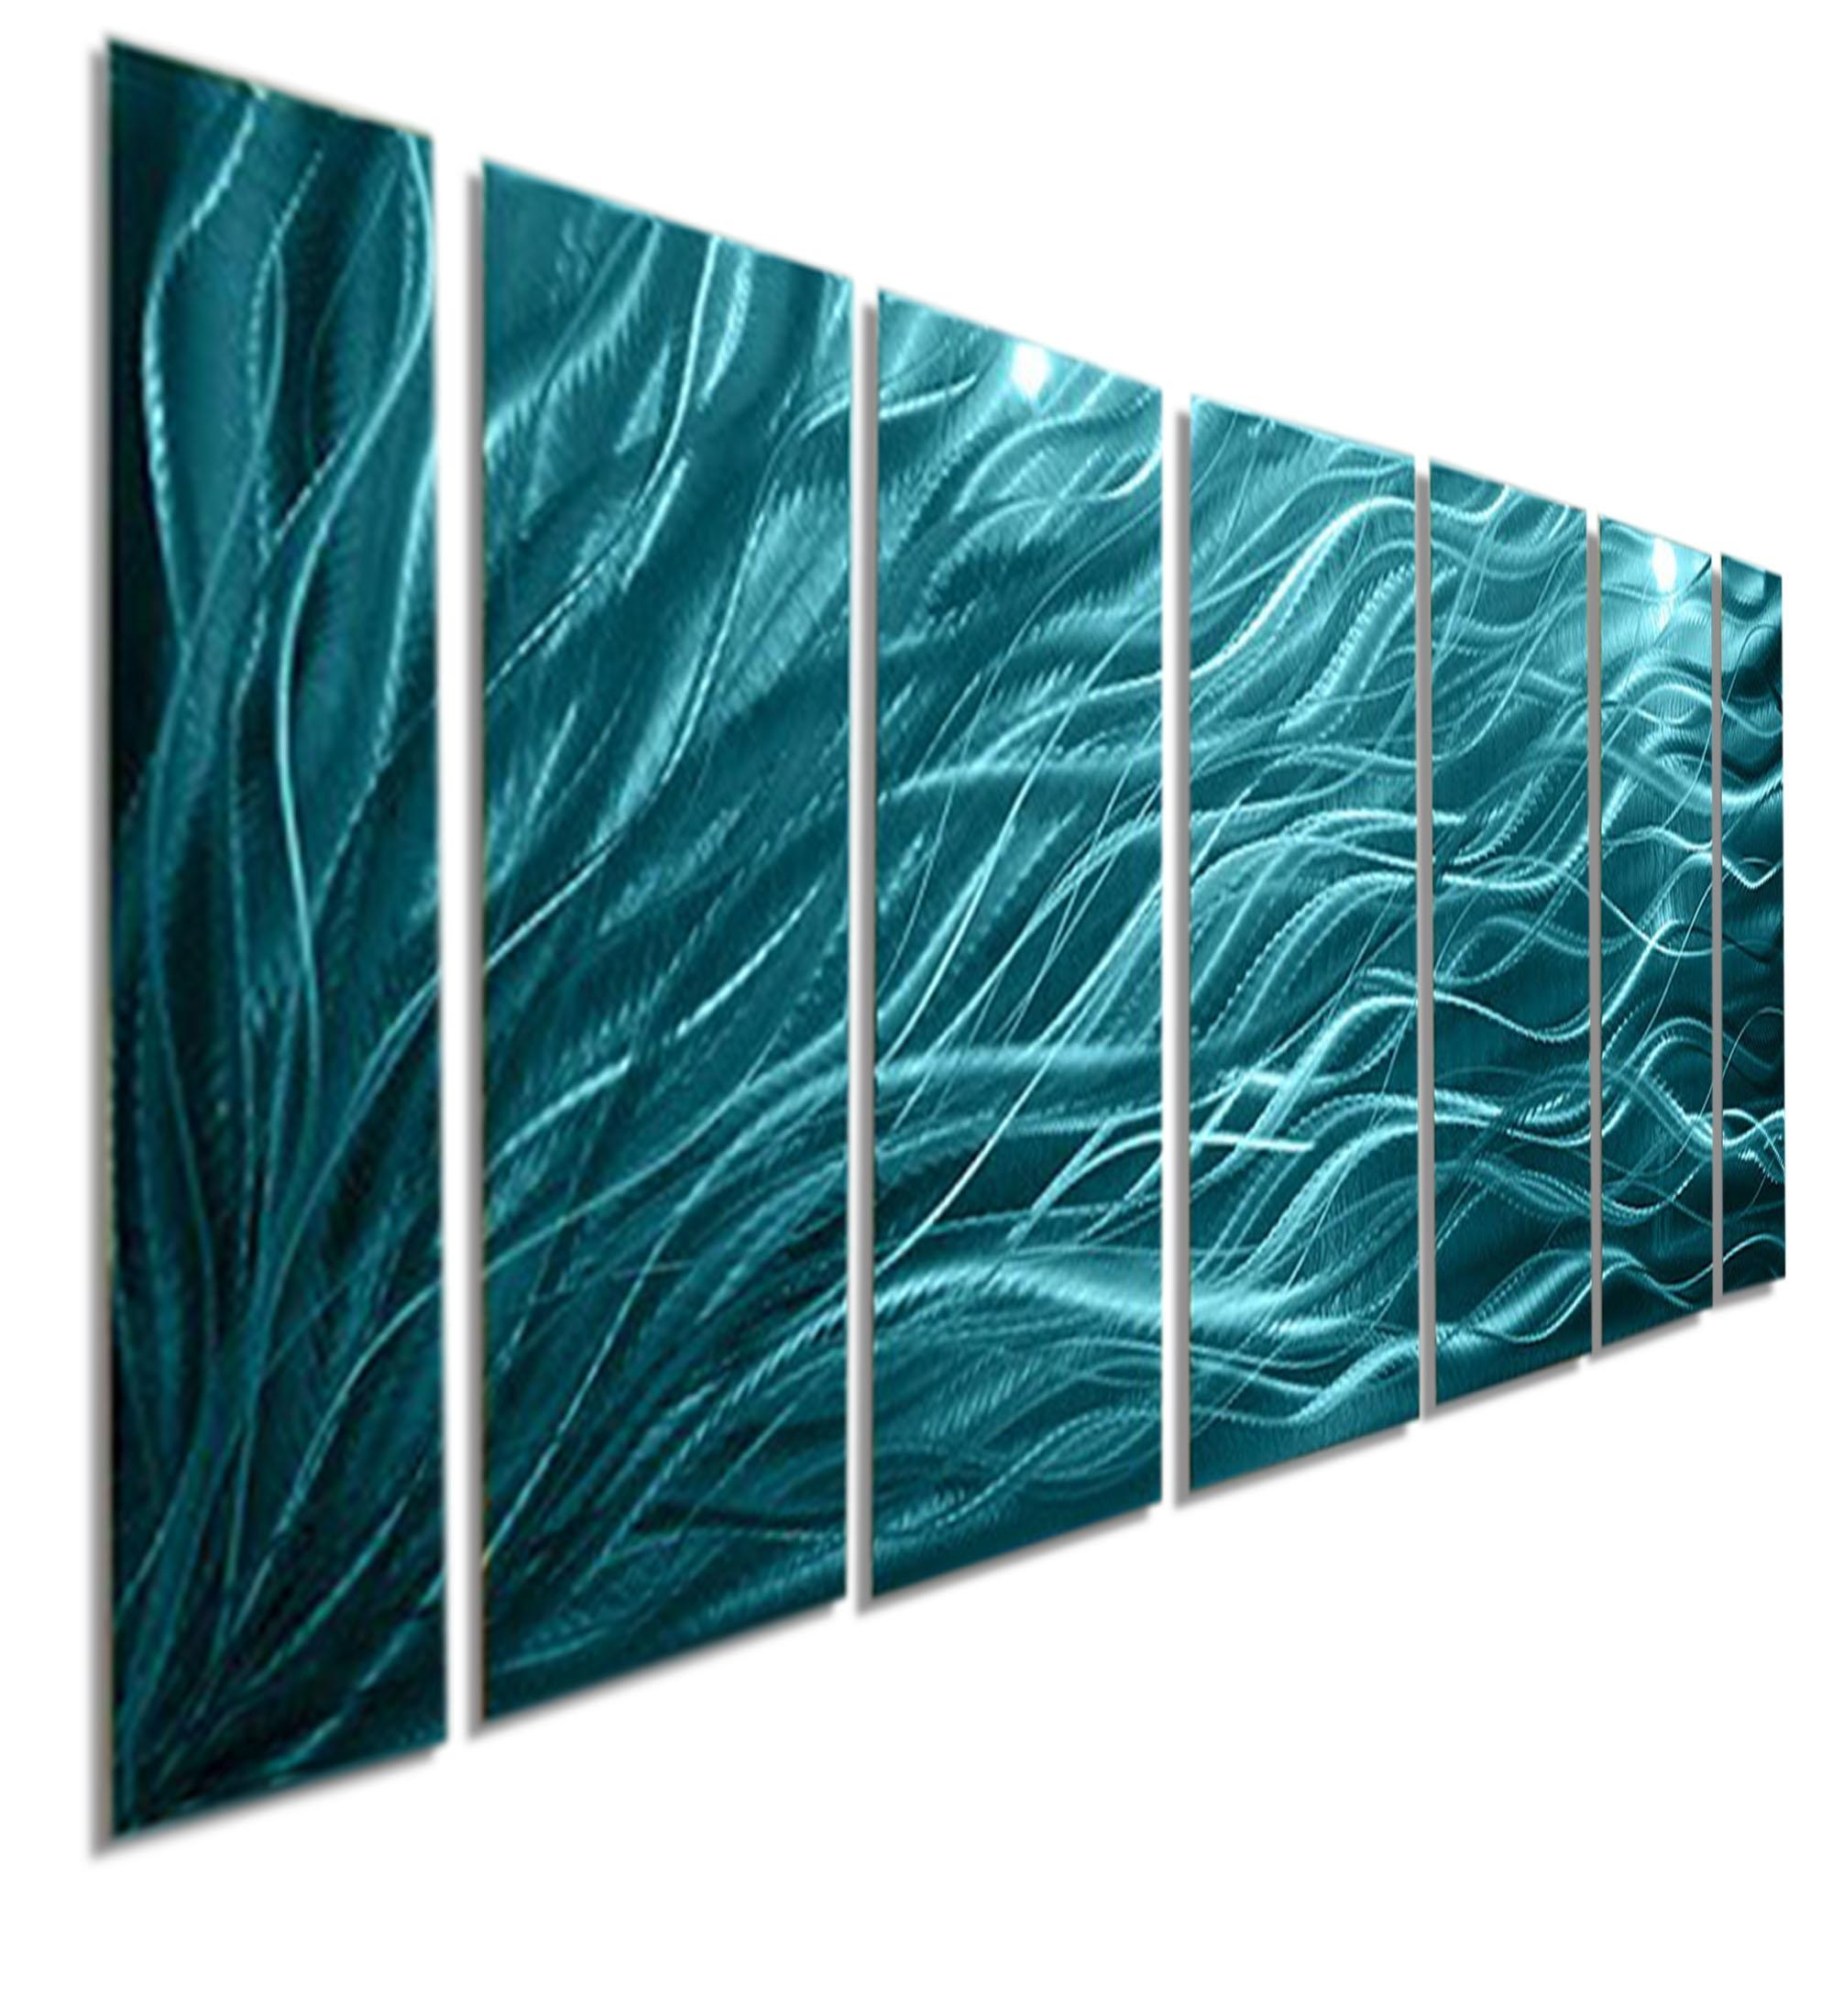 Rays Of Hope Aqua – Large Modern Abstract Metal Wall Artjon Inside Turquoise Metal Wall Art (View 9 of 20)